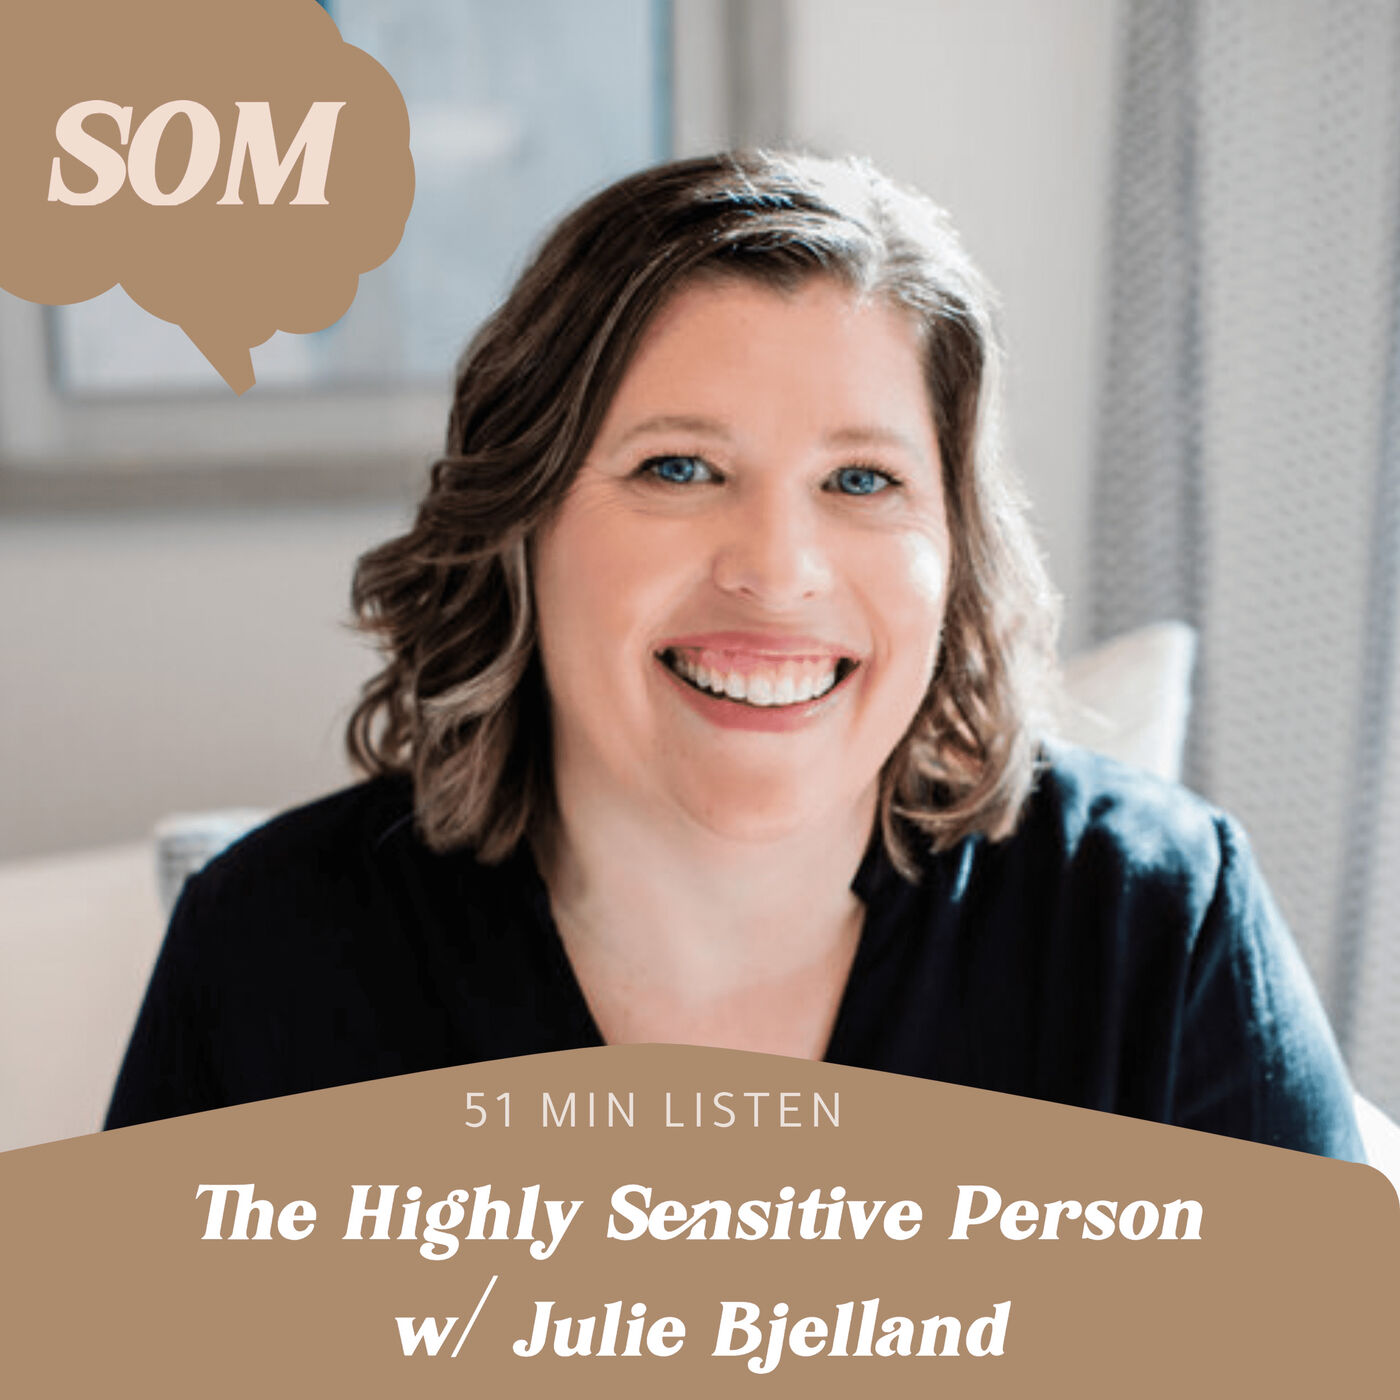 The Highly Sensitive Person w/ Julie Bjelland